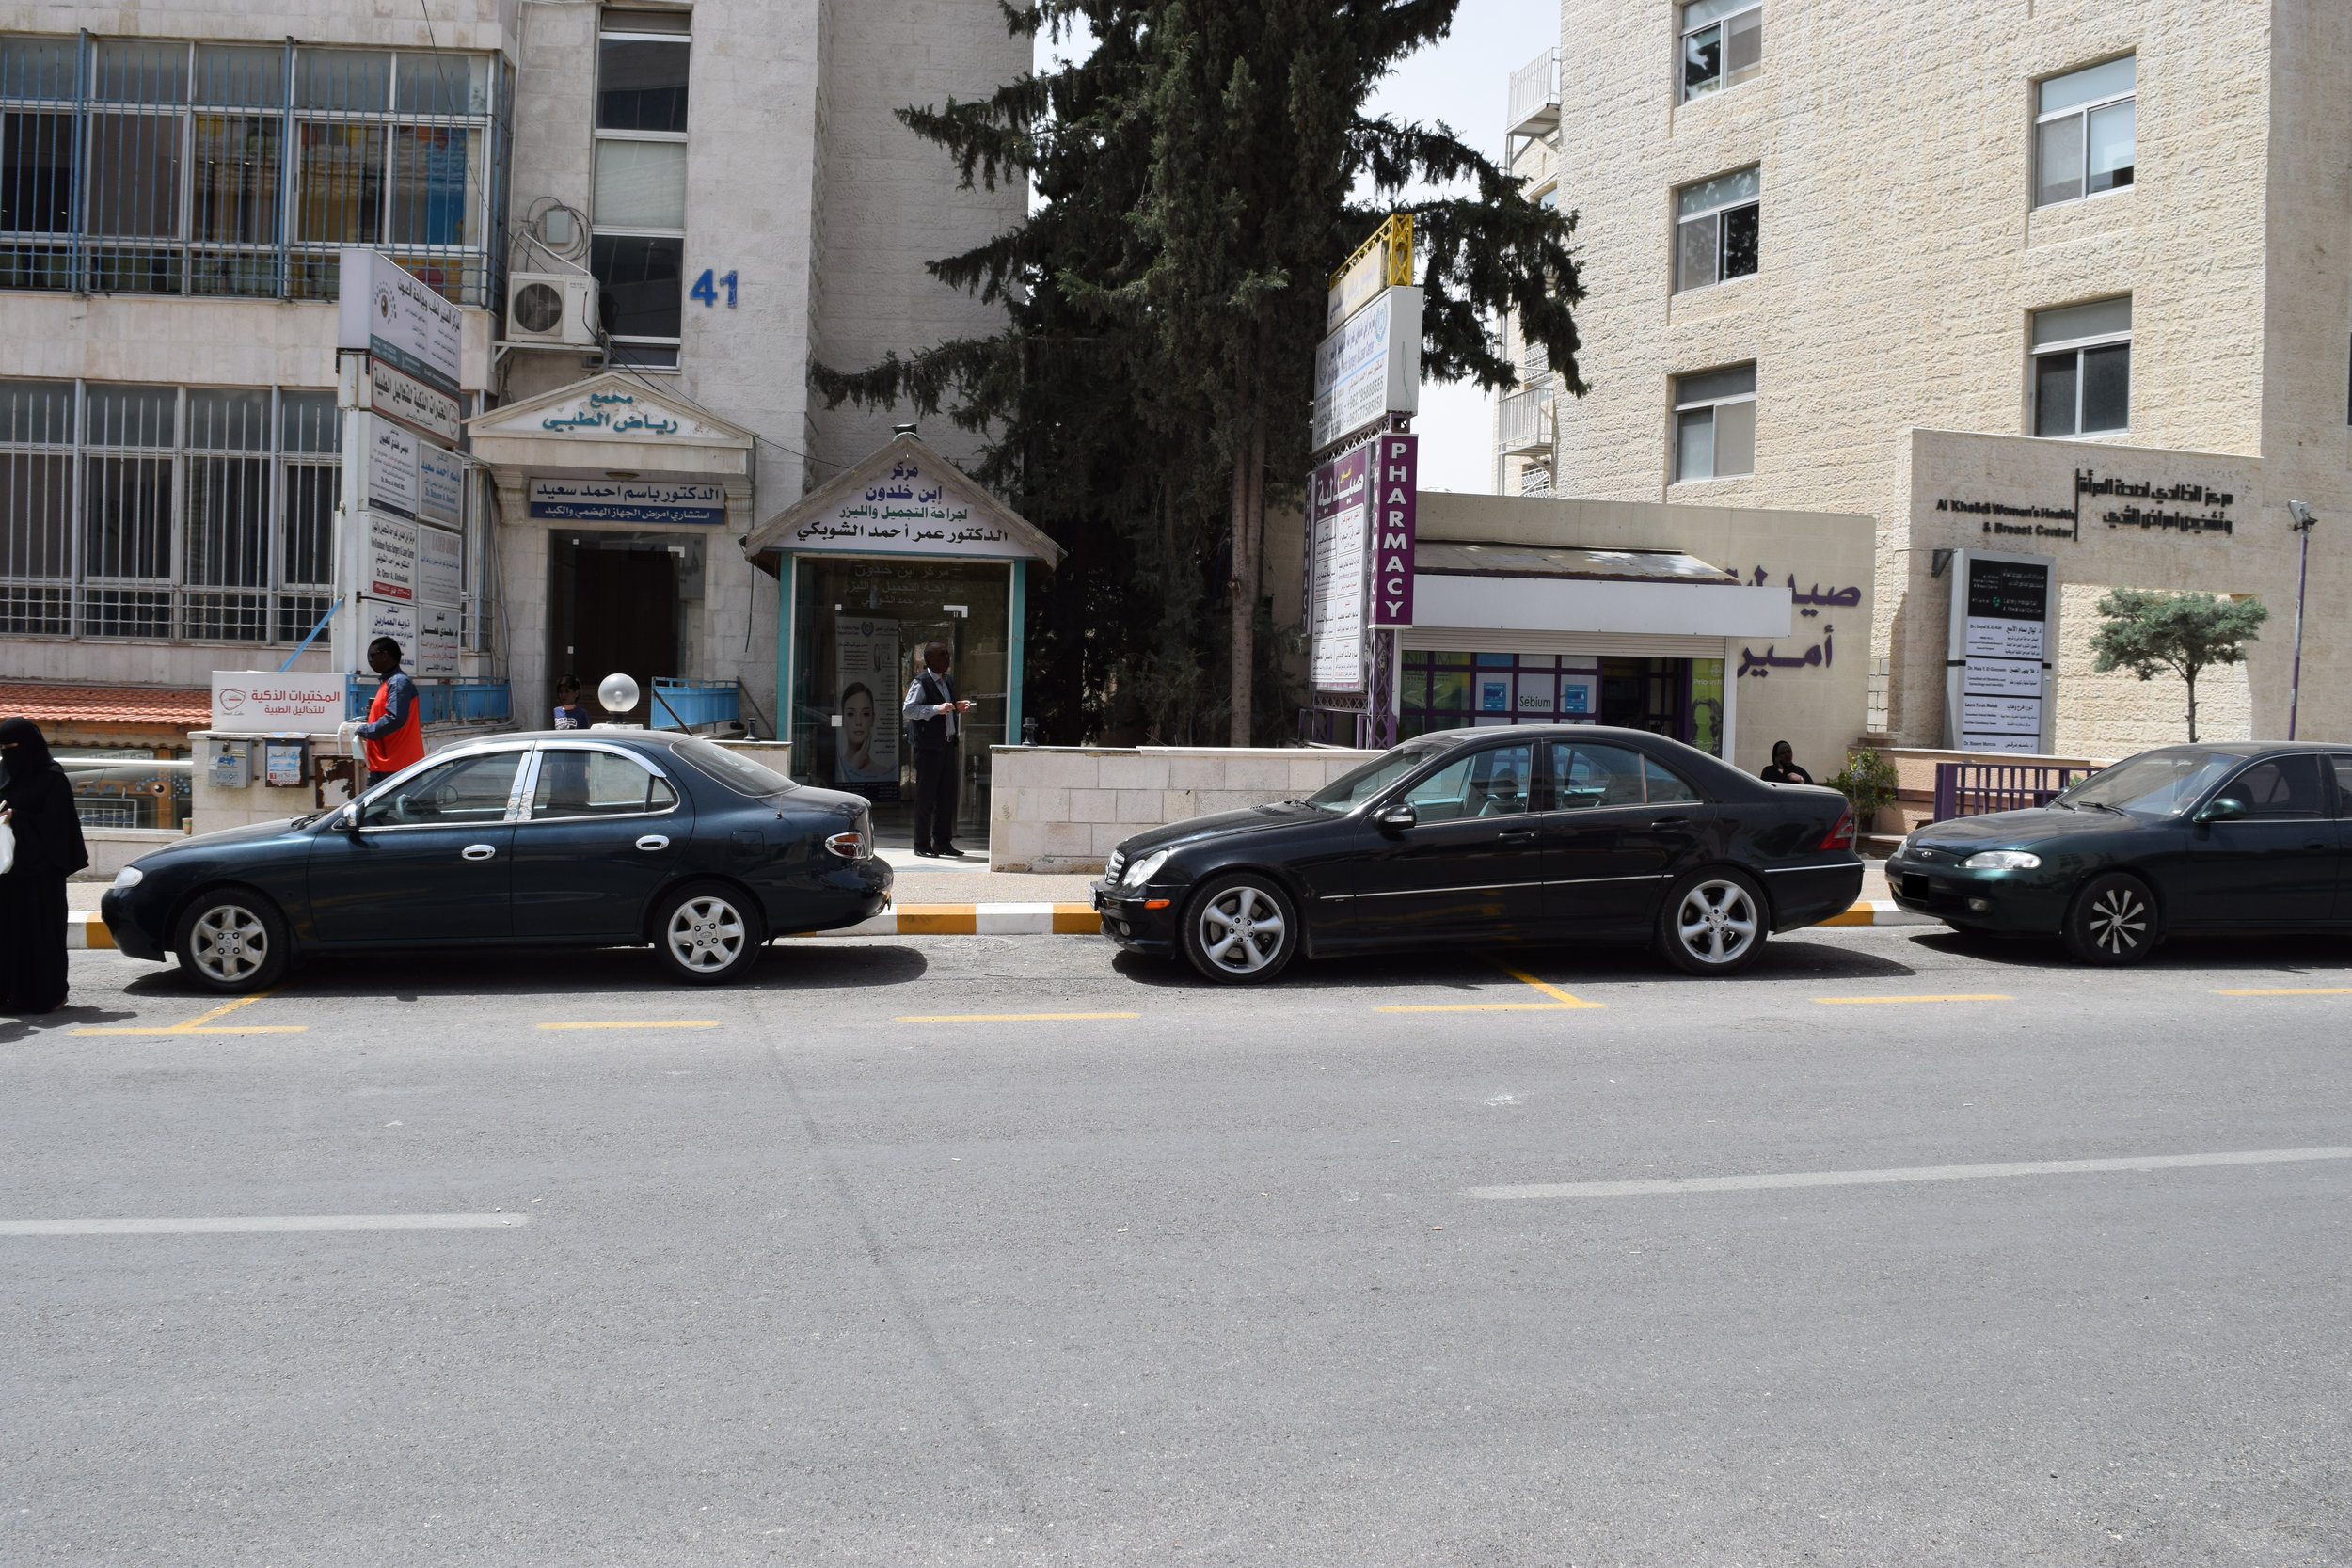 Cars parked across the designated parking lines